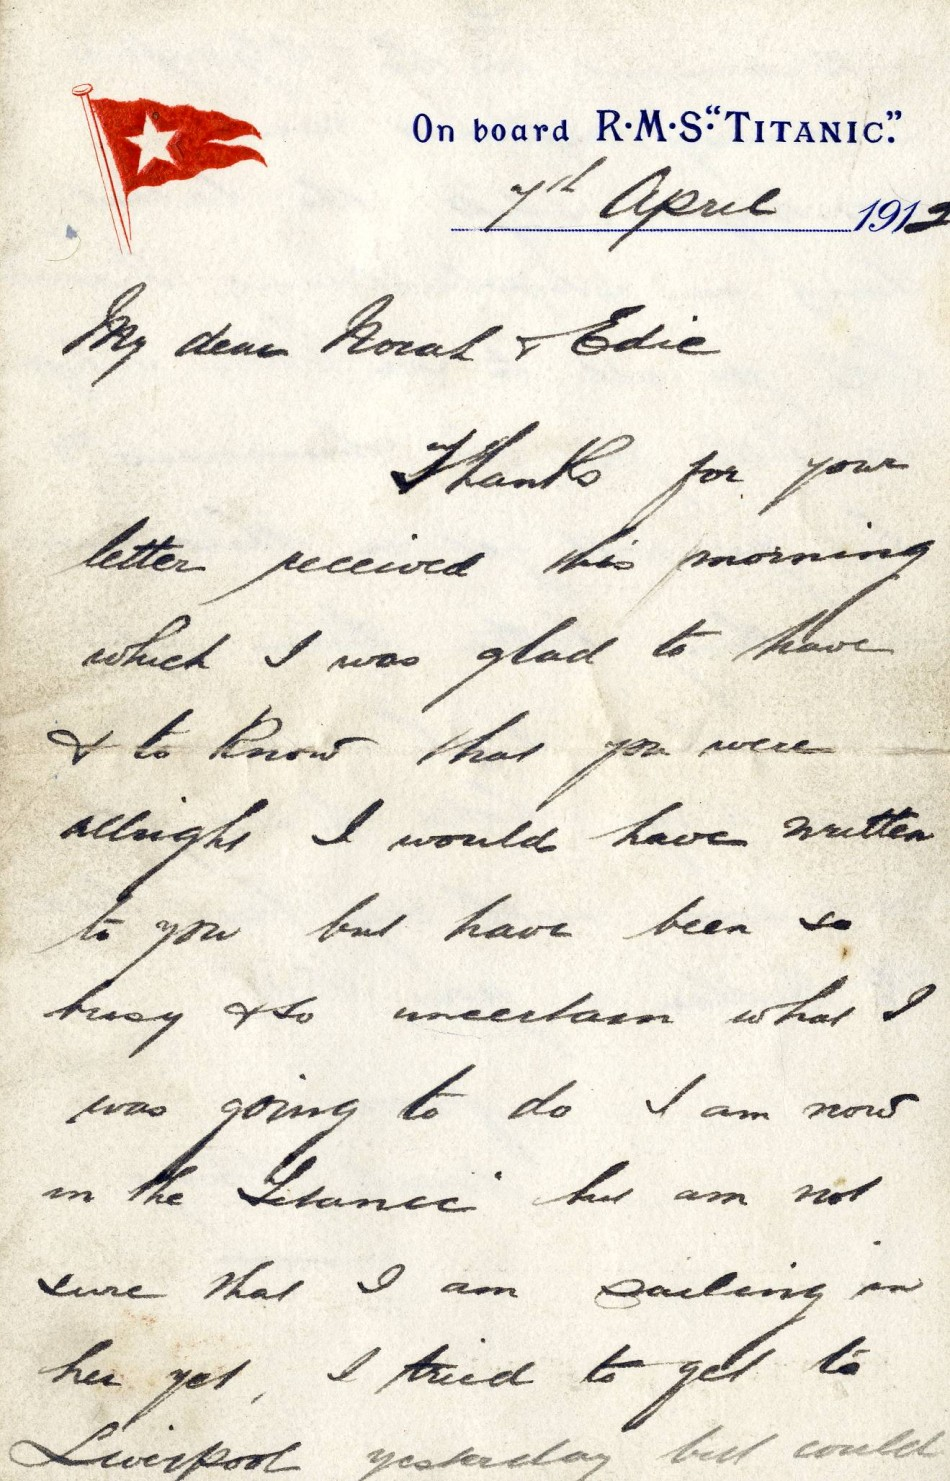 Henry Wildes letter